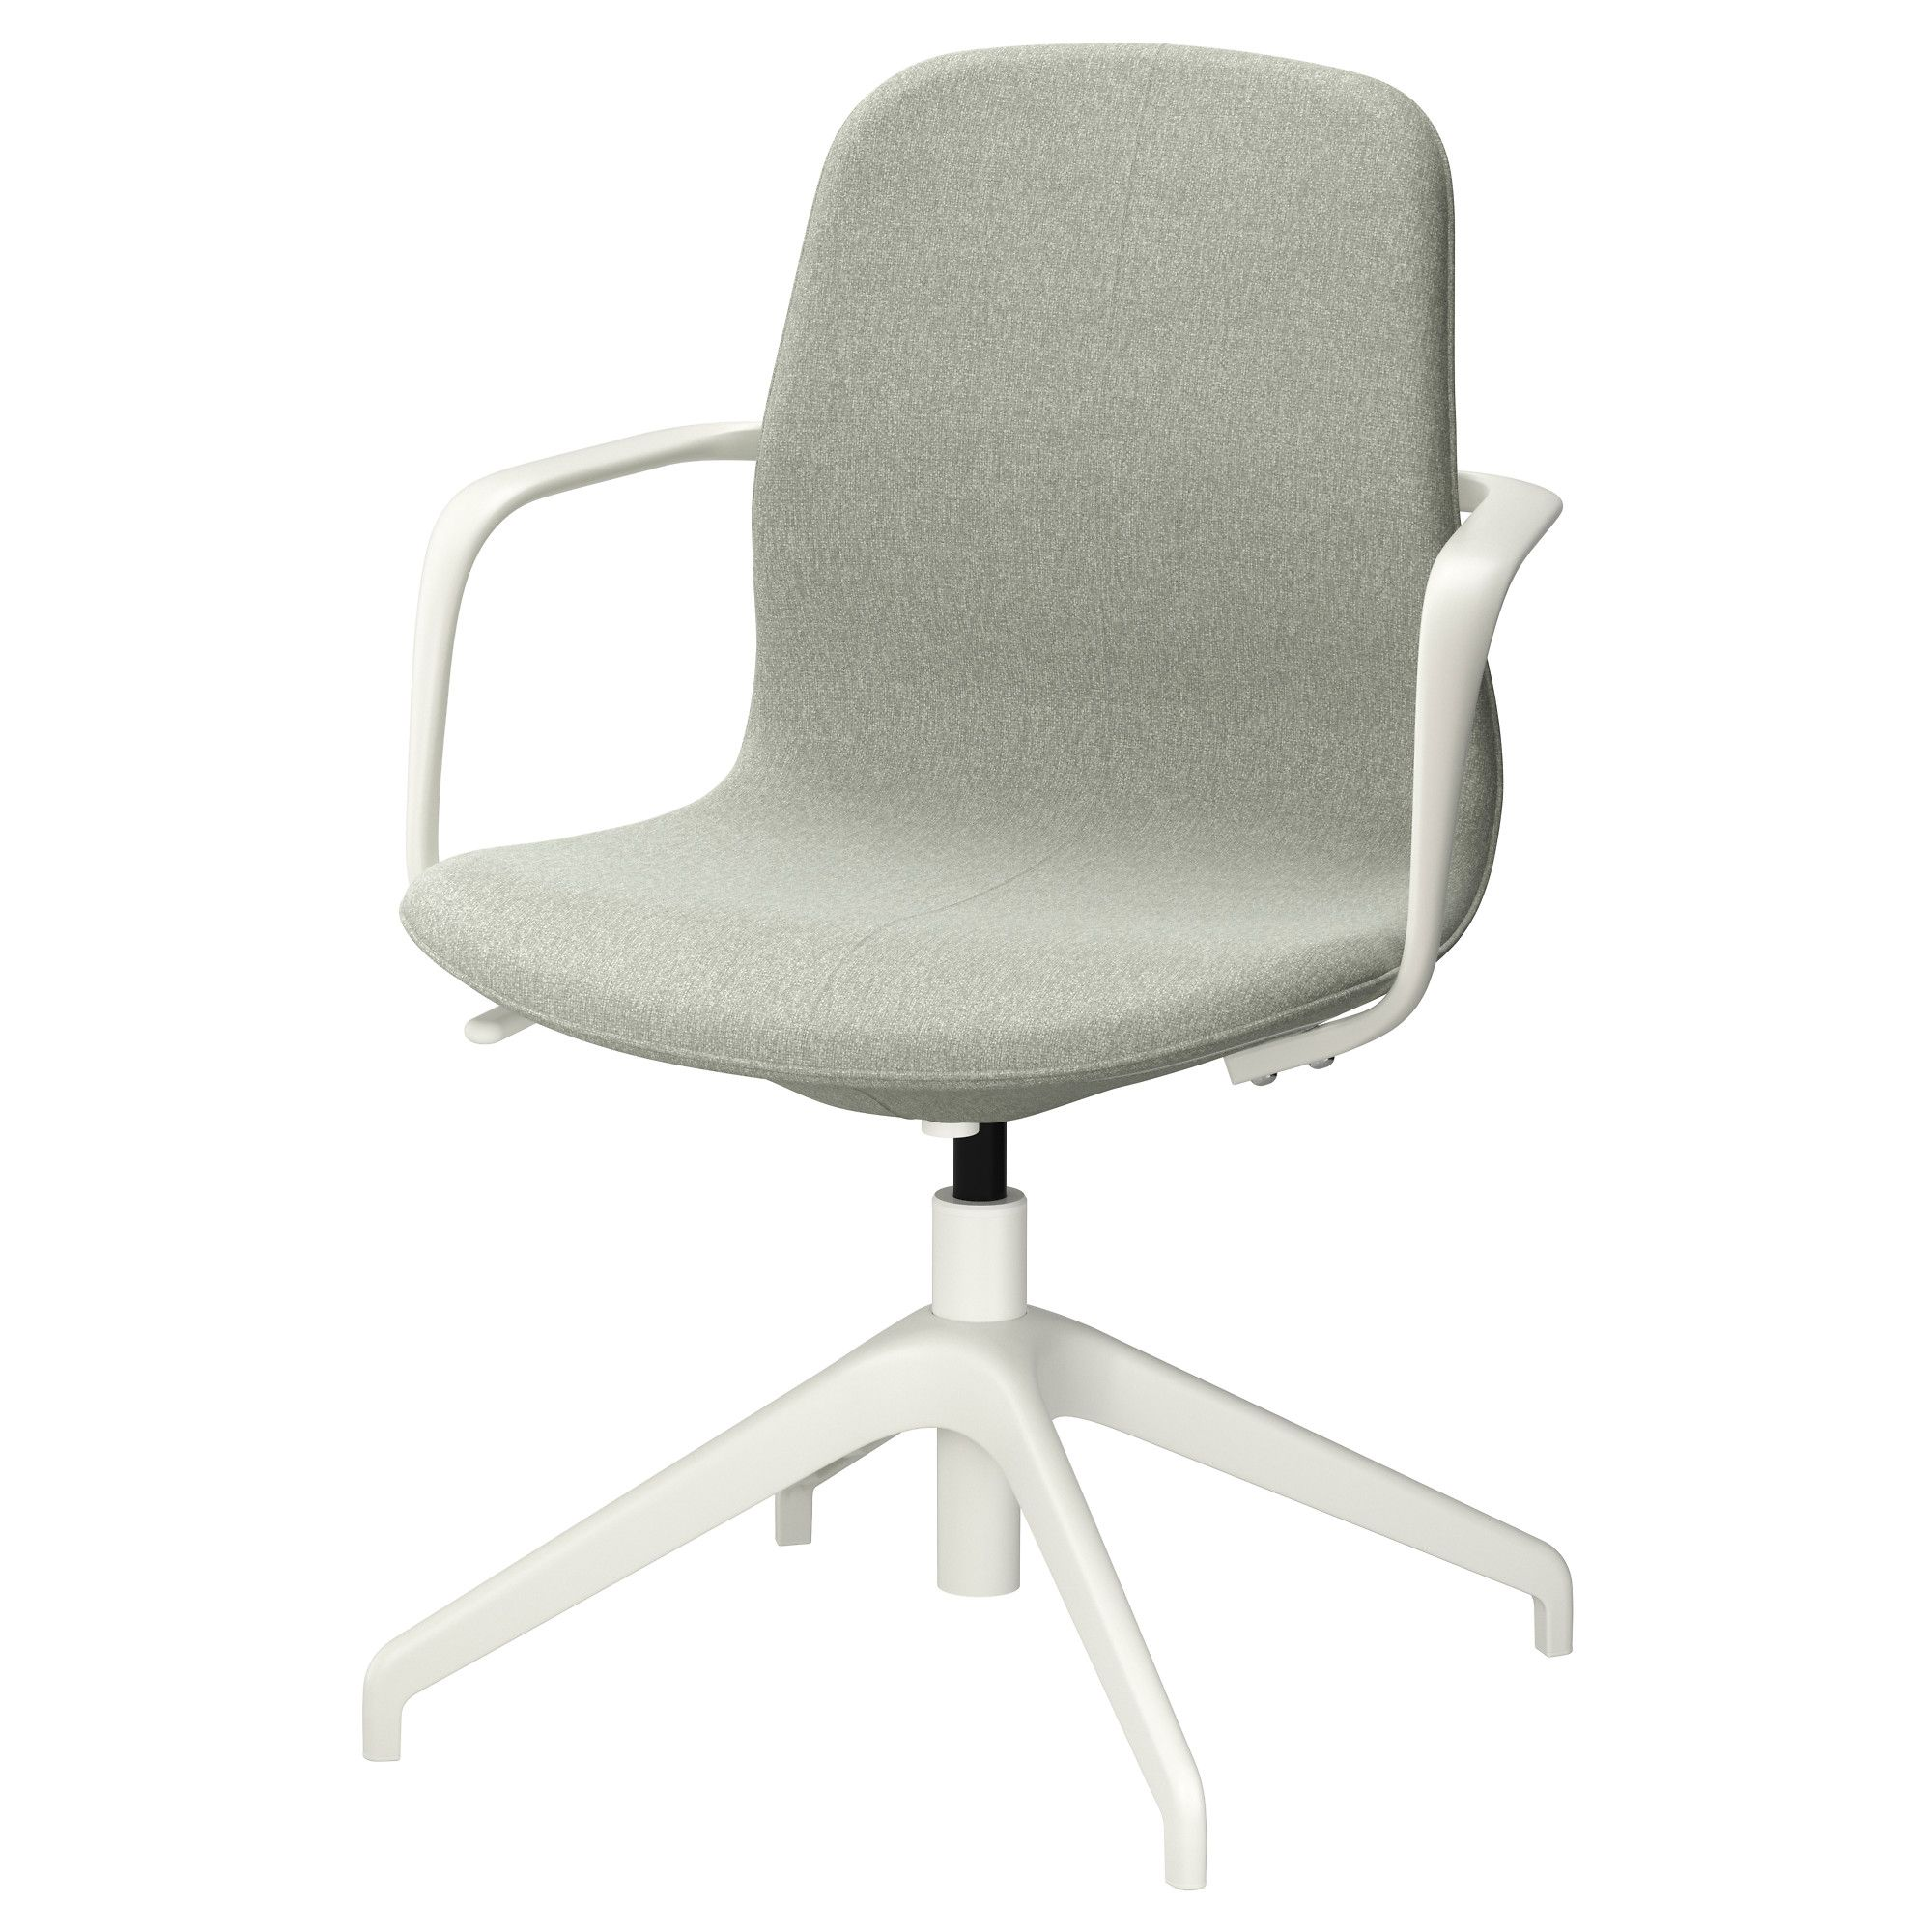 IKEA LNGFJLL Swivel chair Gunnared light greenwhite An ergonomic